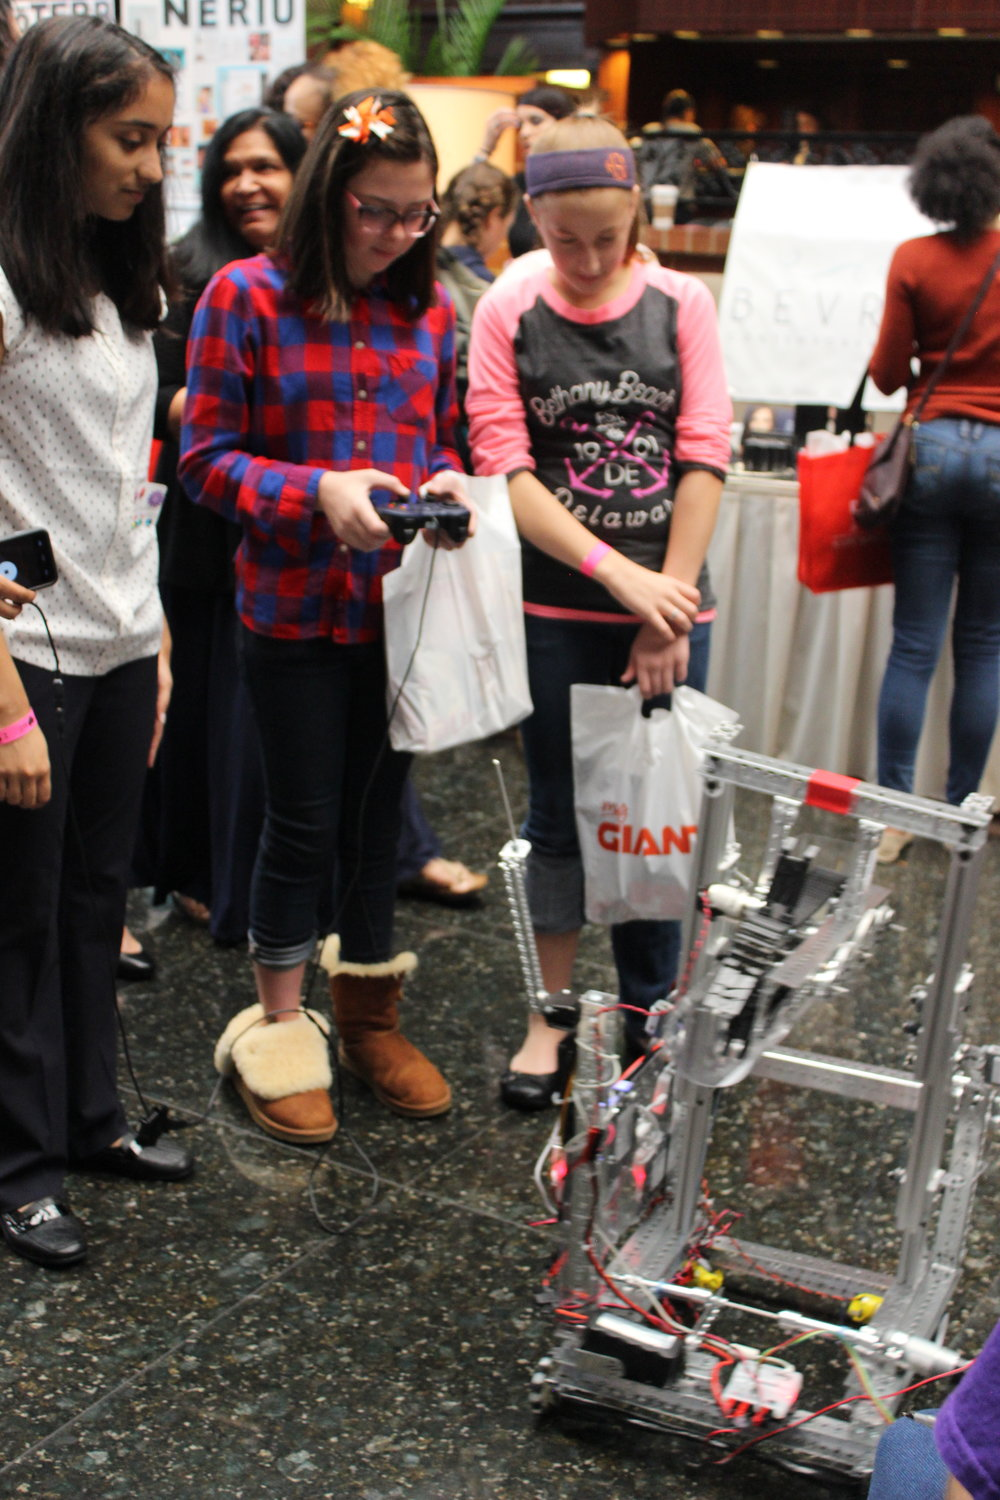 Rachael helps girls learn how to raise the robot's lift using the controllers. Girls World Expo, October 2016.